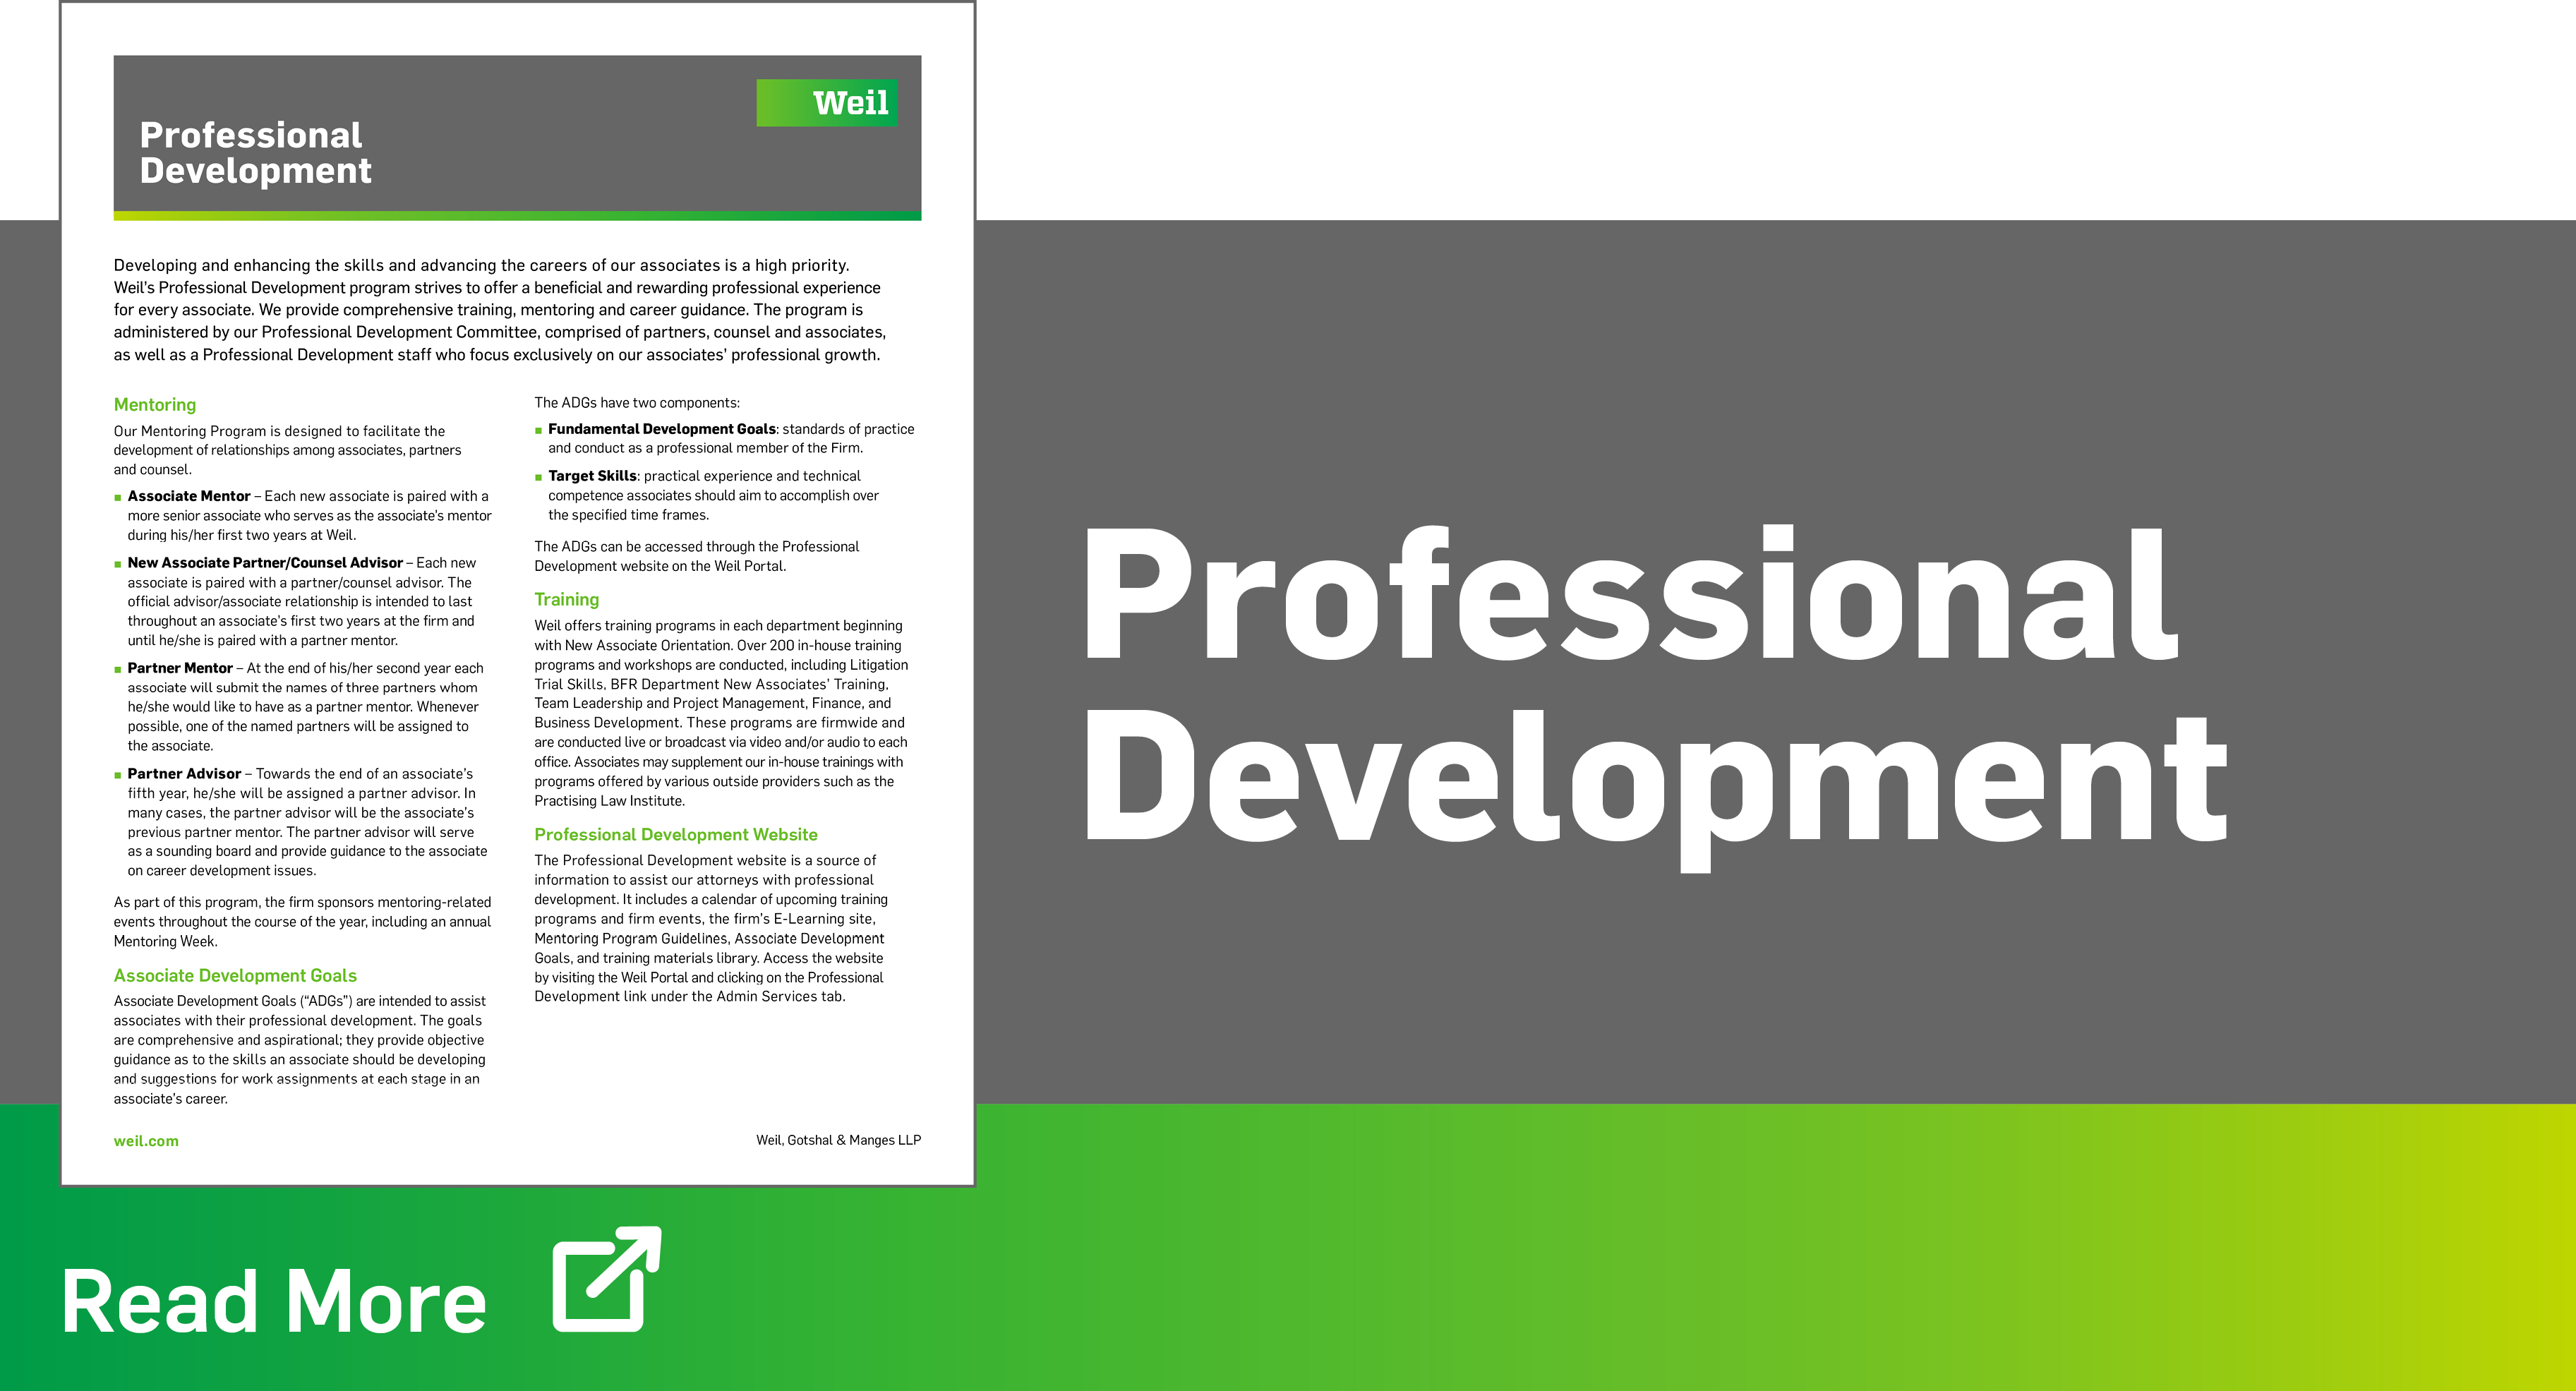 Professional-Development-Weil-Gotshal